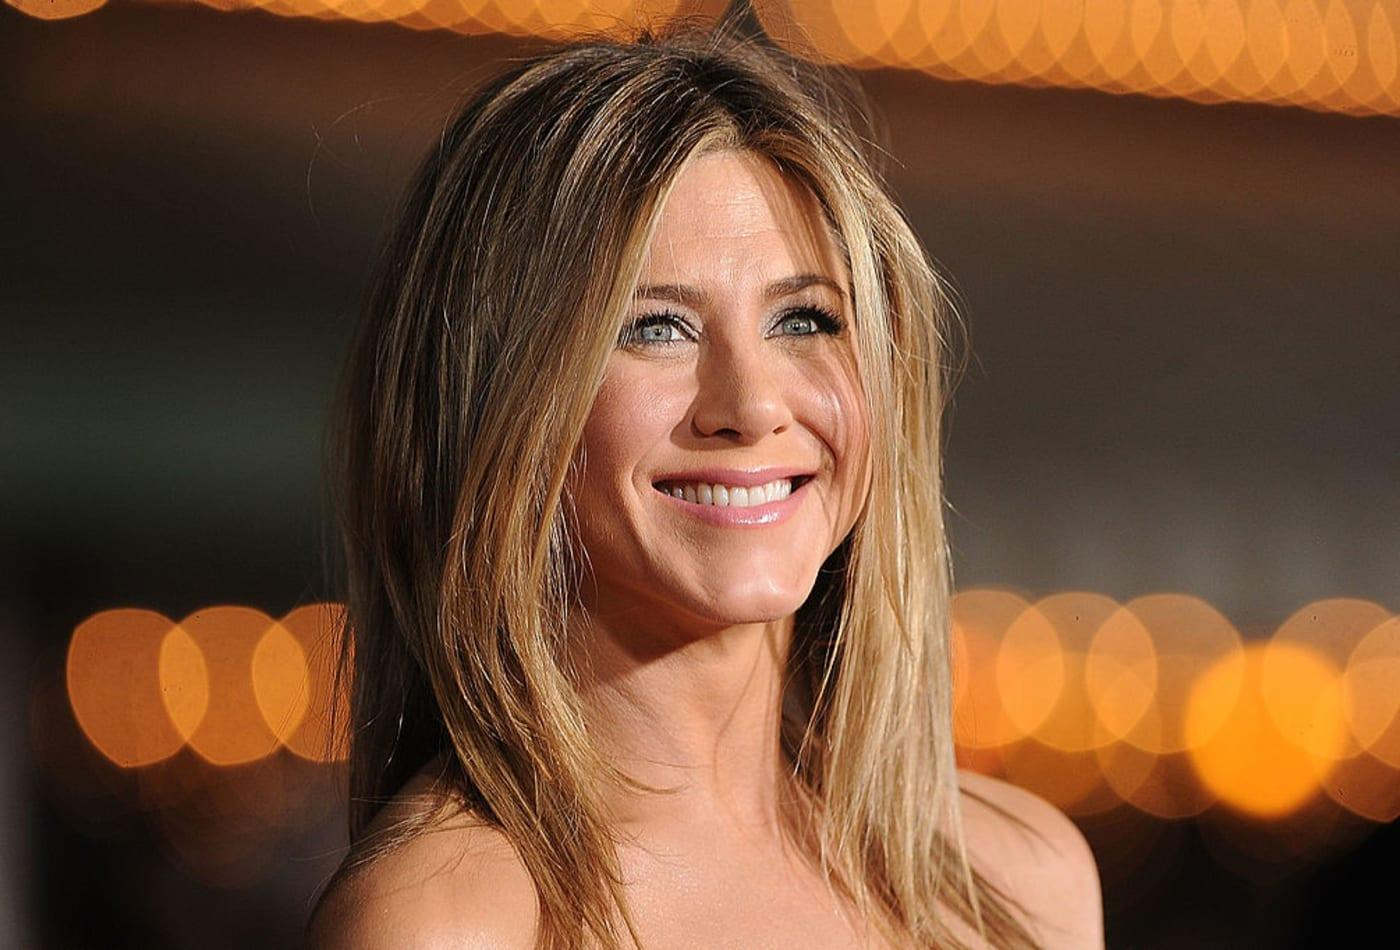 Jennifer Aniston Was Told To Drop 30 Pounds Before Starring In Friends, Book Reveals